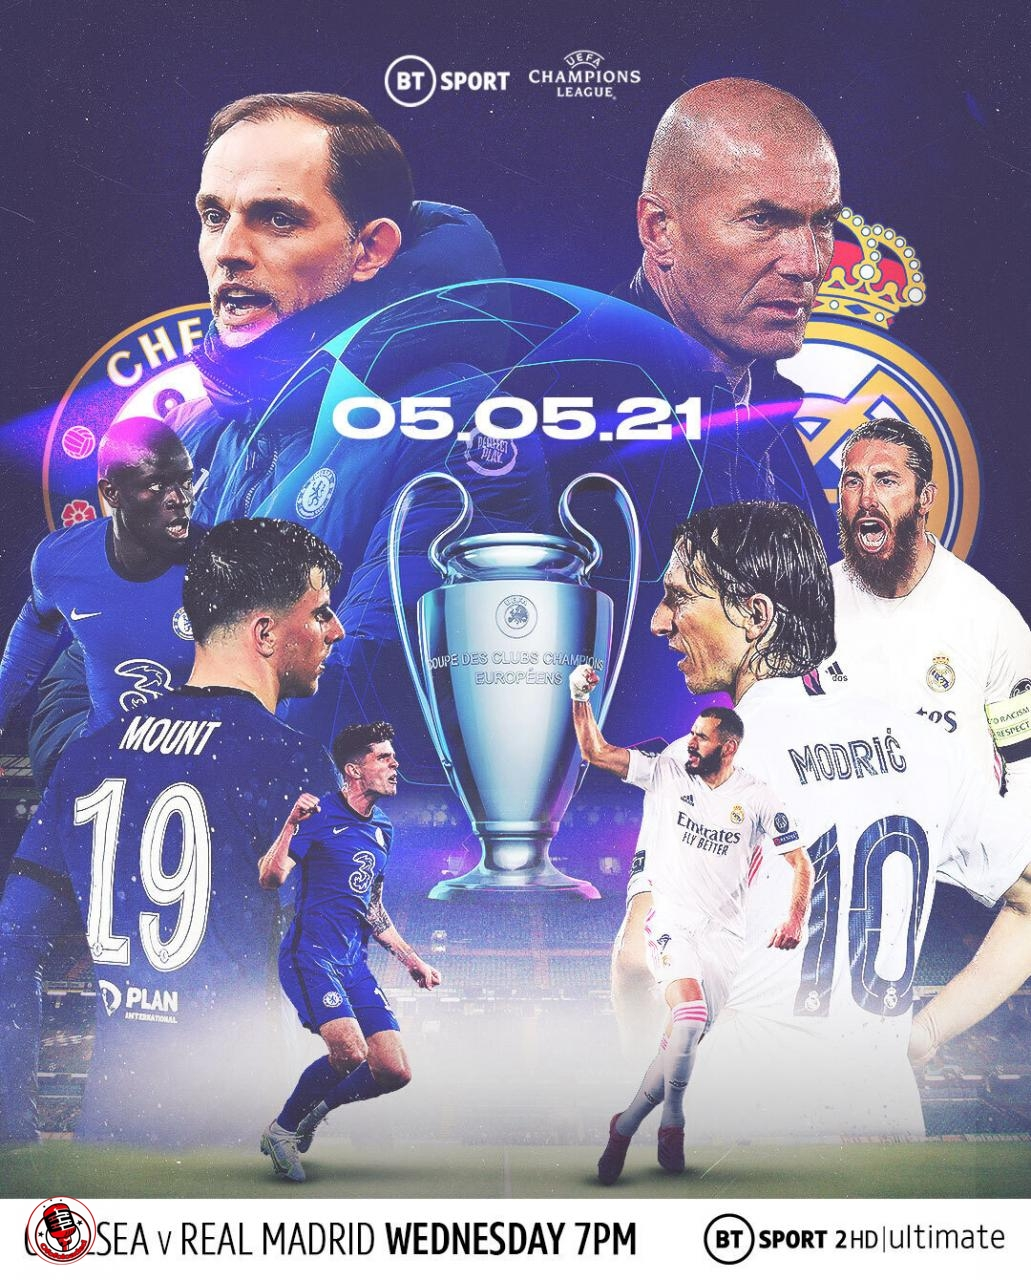 LIVE STREAM : Chelsea Vs Real Madrid [Watch Now] CHAMPIONS LEAGUE 2020/2021 #CHERMA #UCL #FOOTBALL #MADRID #CHELSEA min